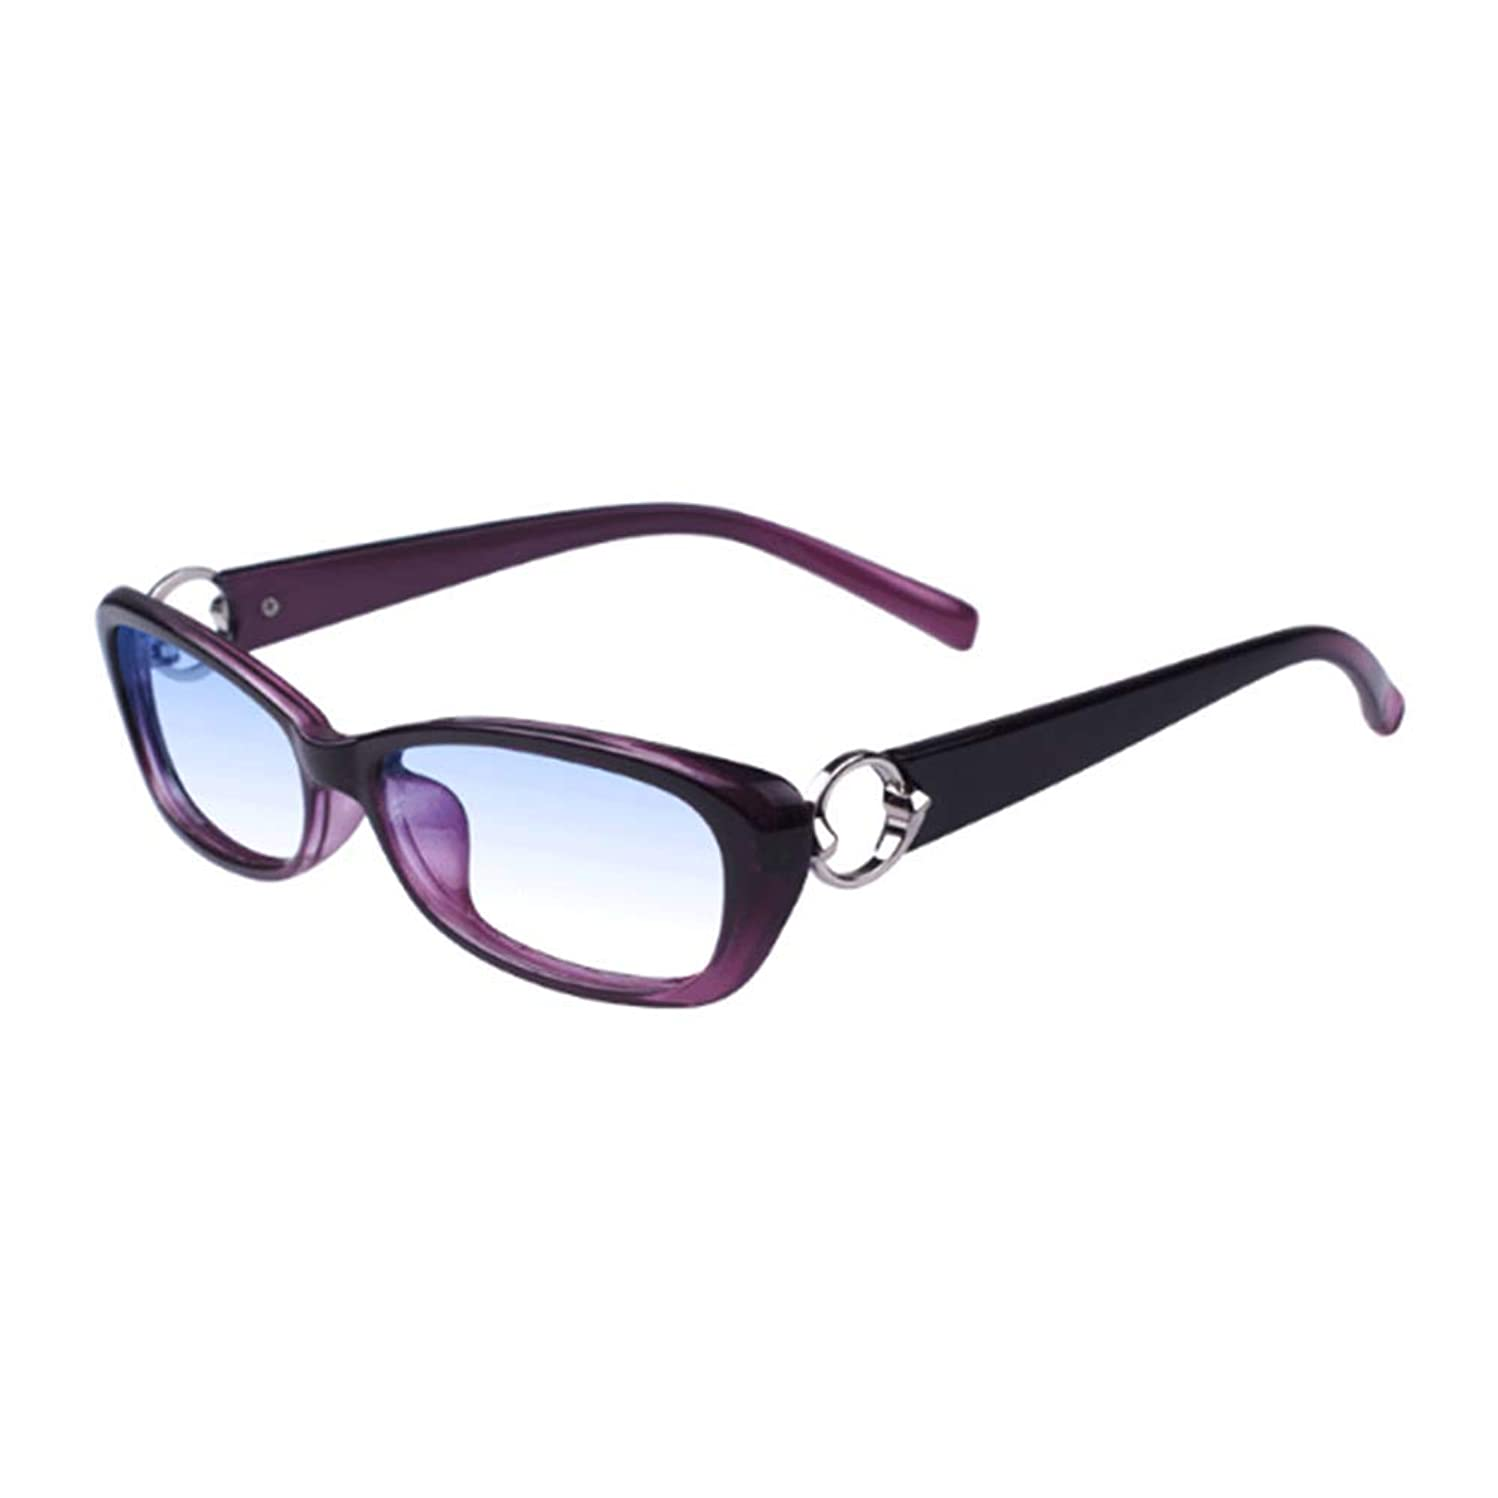 YUANJJ Stylish Women's Reading Glasses, Anti-Blu-Ray/Radiation-Proof Computer Glasses, Suitable for Mobile Phones/Computers/Games (Diopter 2.50)